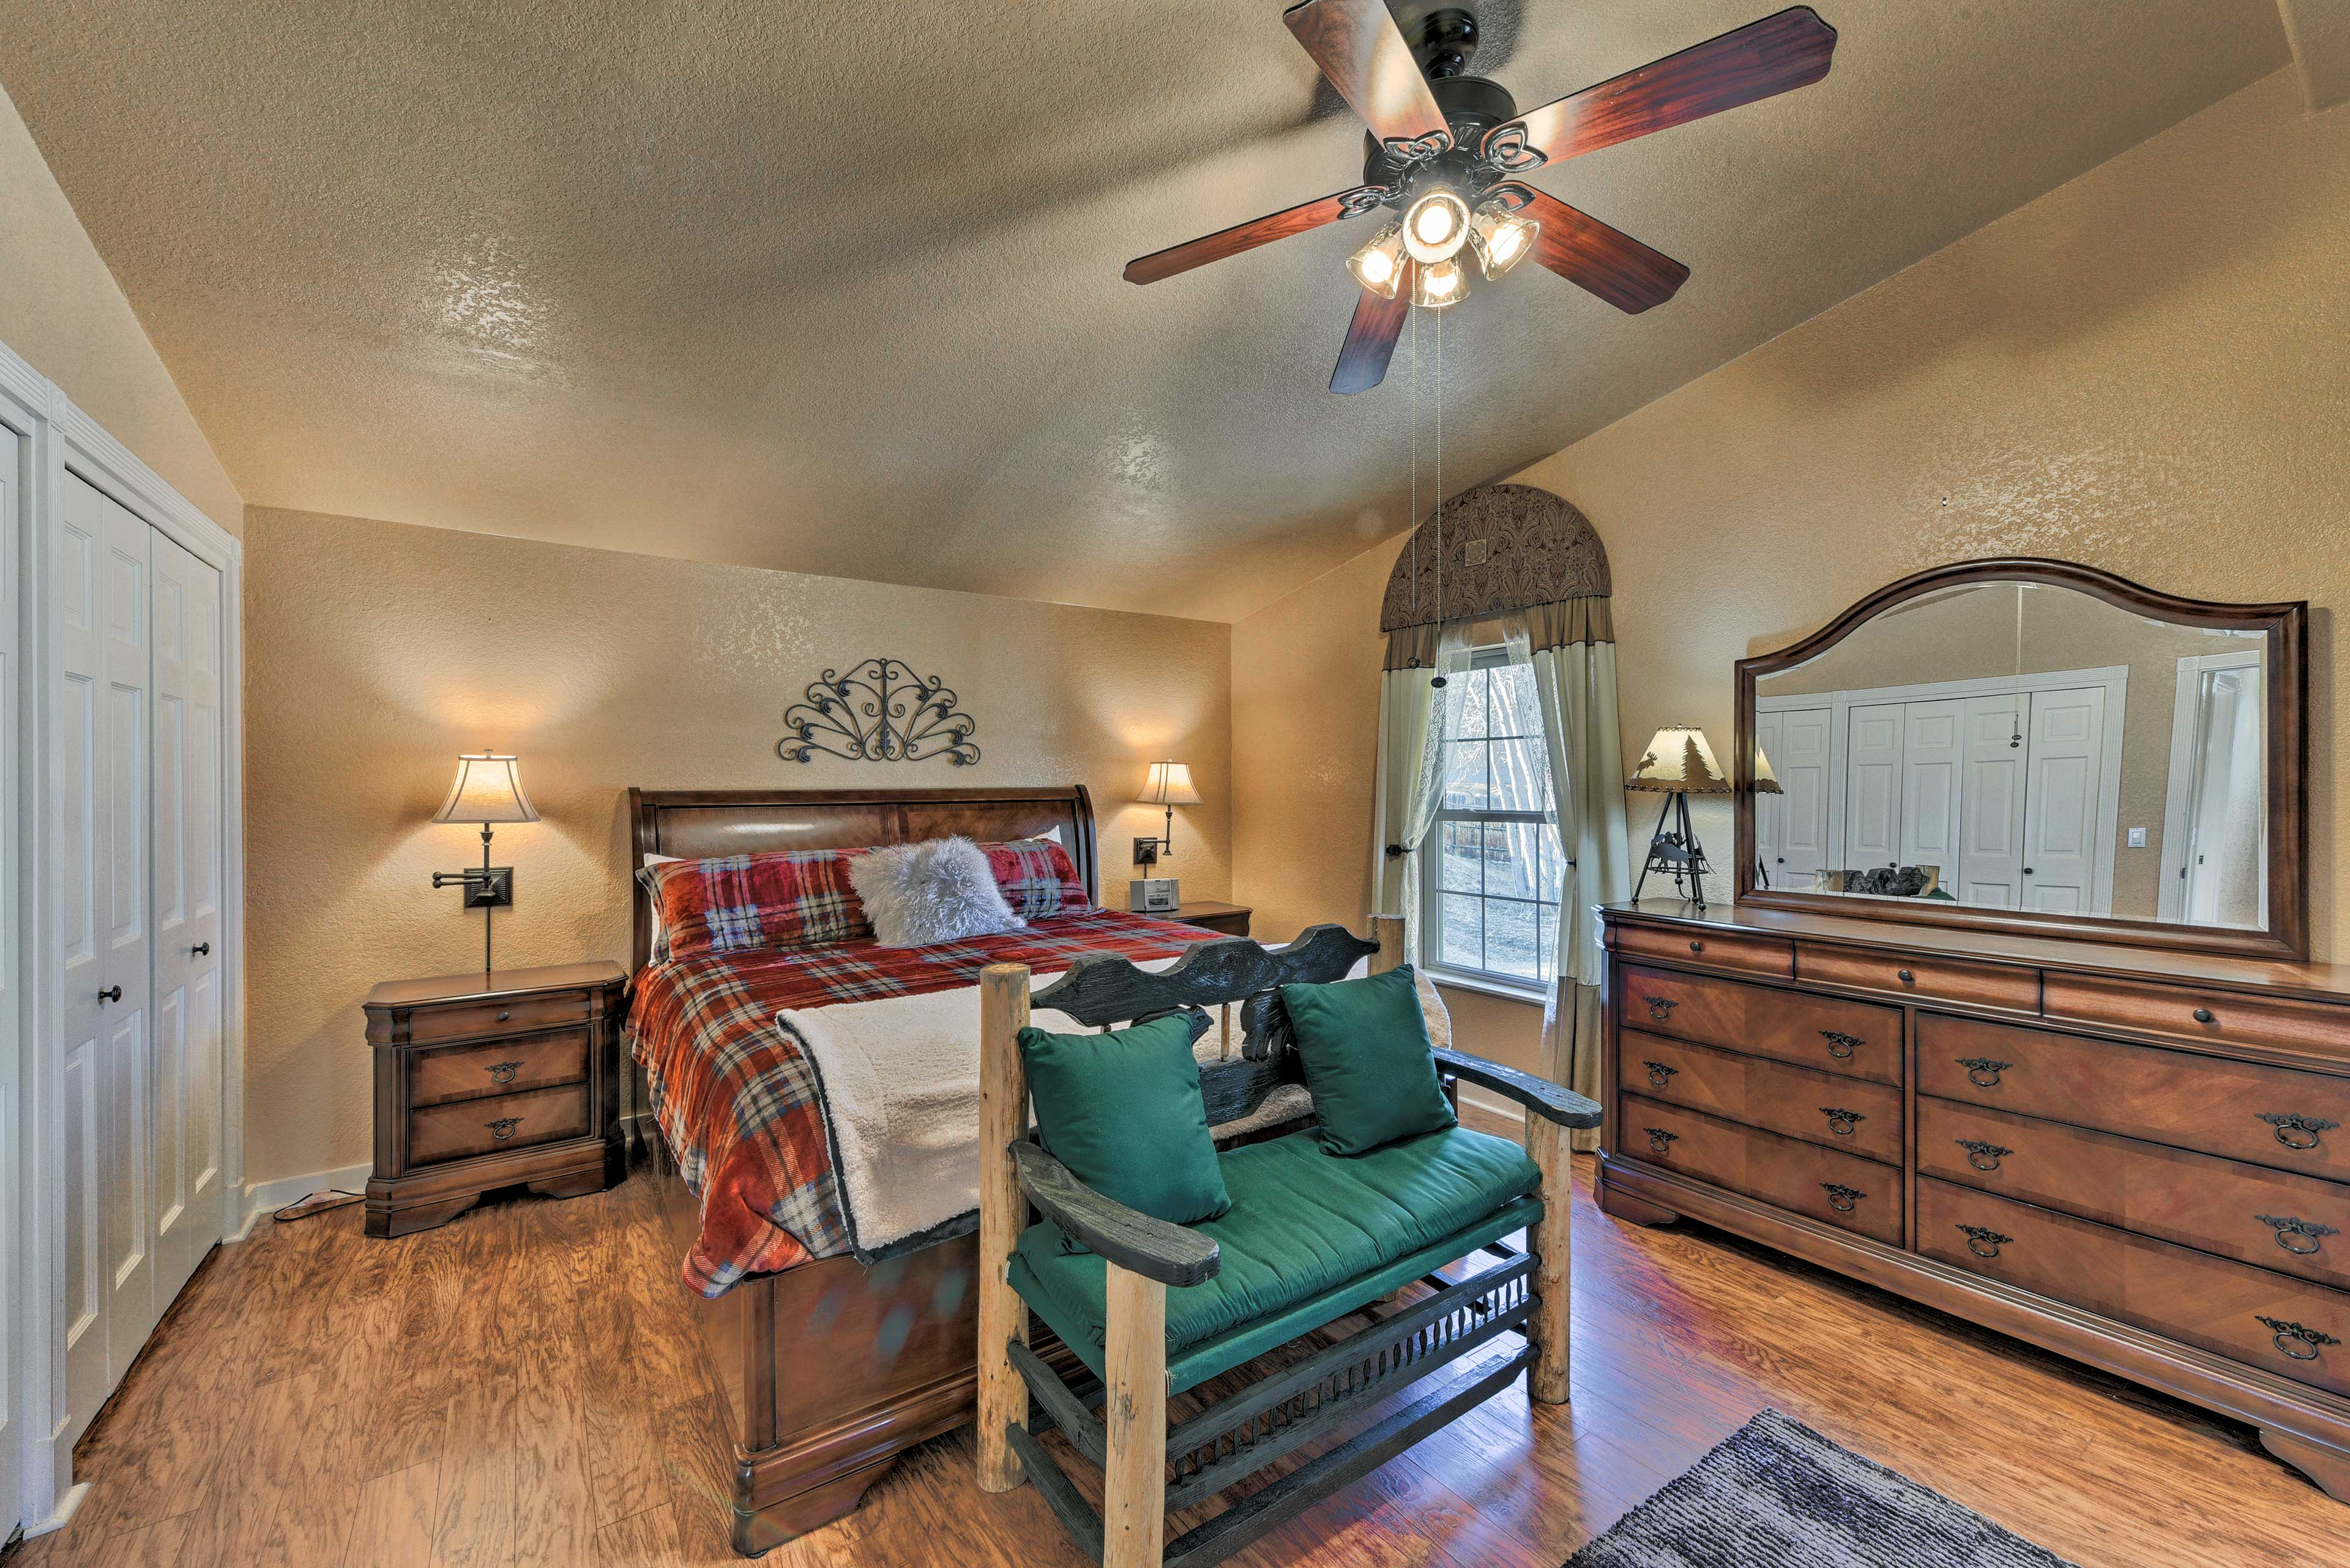 Heads of the household can retreat to this highly appointed master suite.